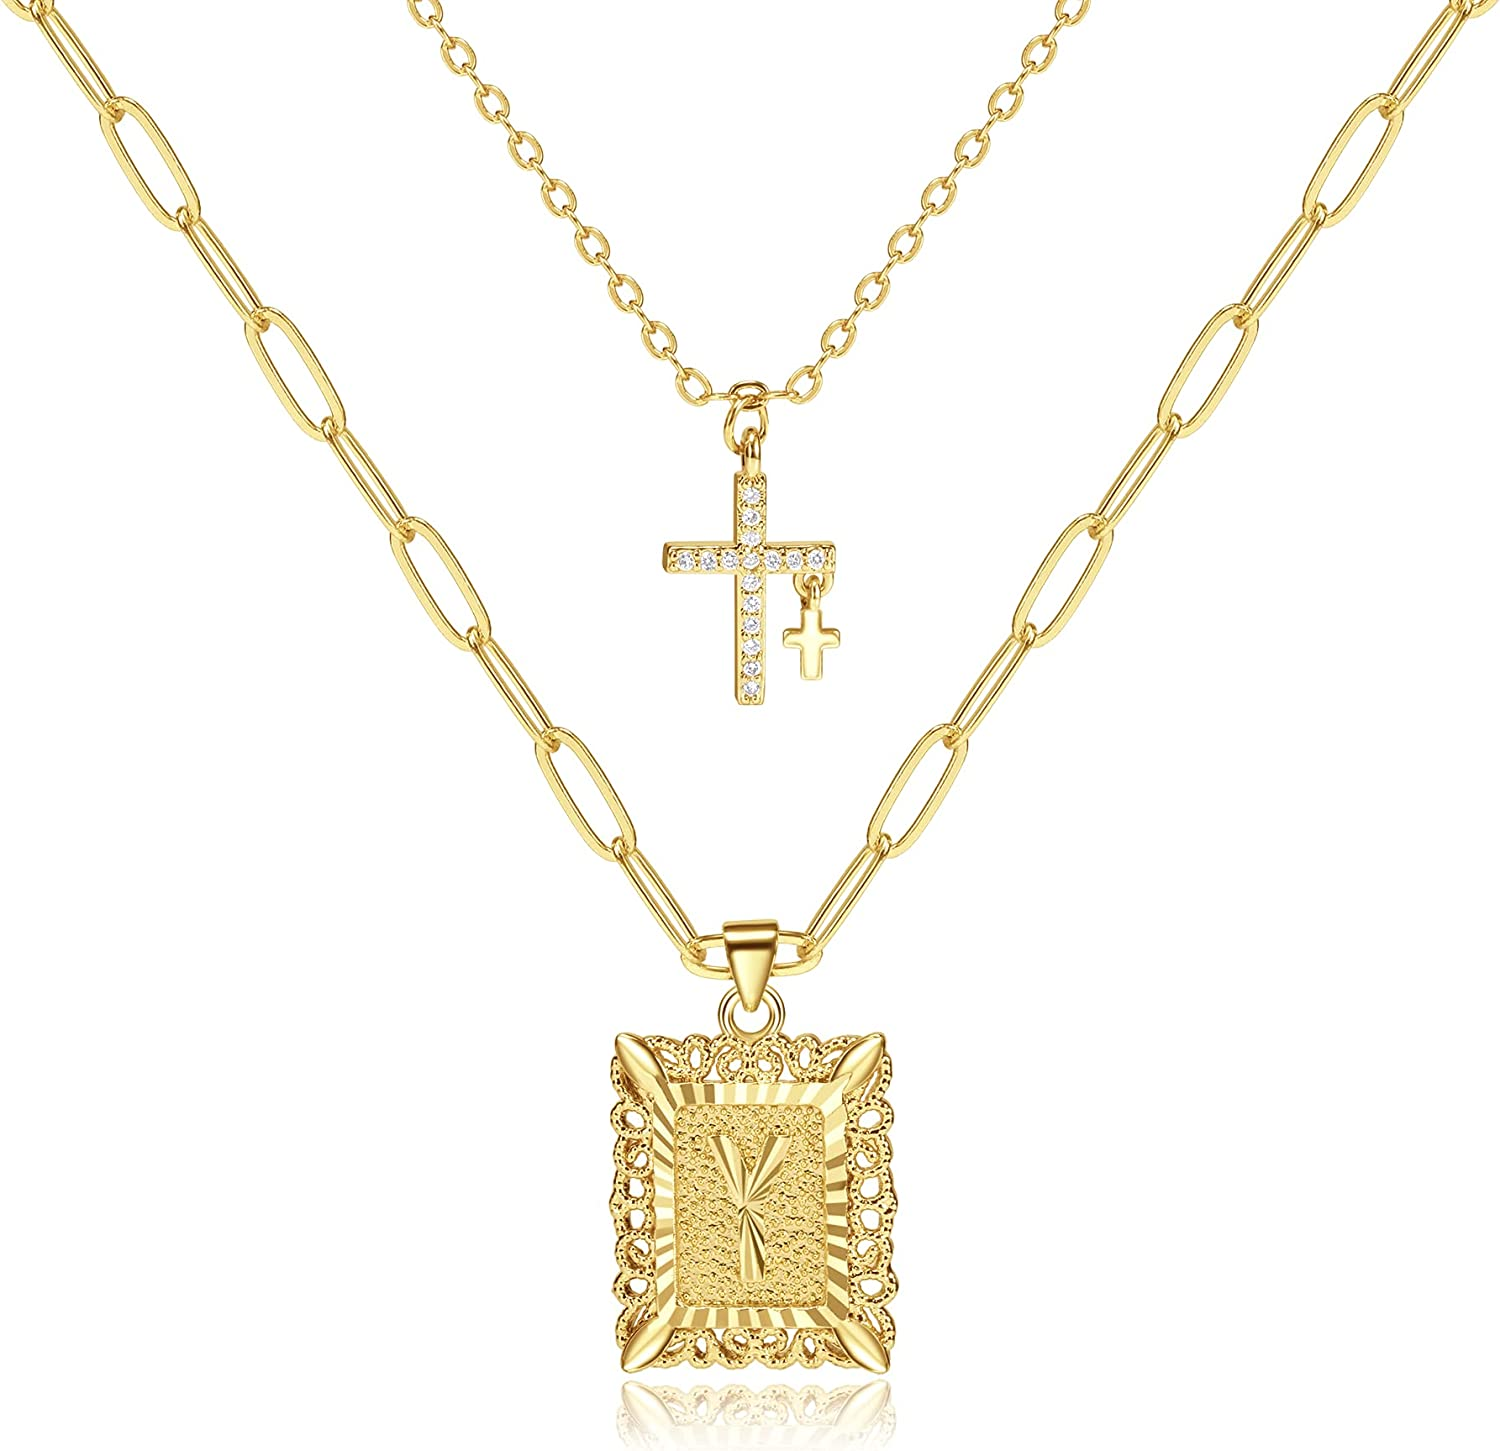 Layered Initial Necklaces for Women 14K Gold Plated Paperclip Chain Necklace Personalized Cross Letter Pendant Chain Necklace for Women Jewelry Gift